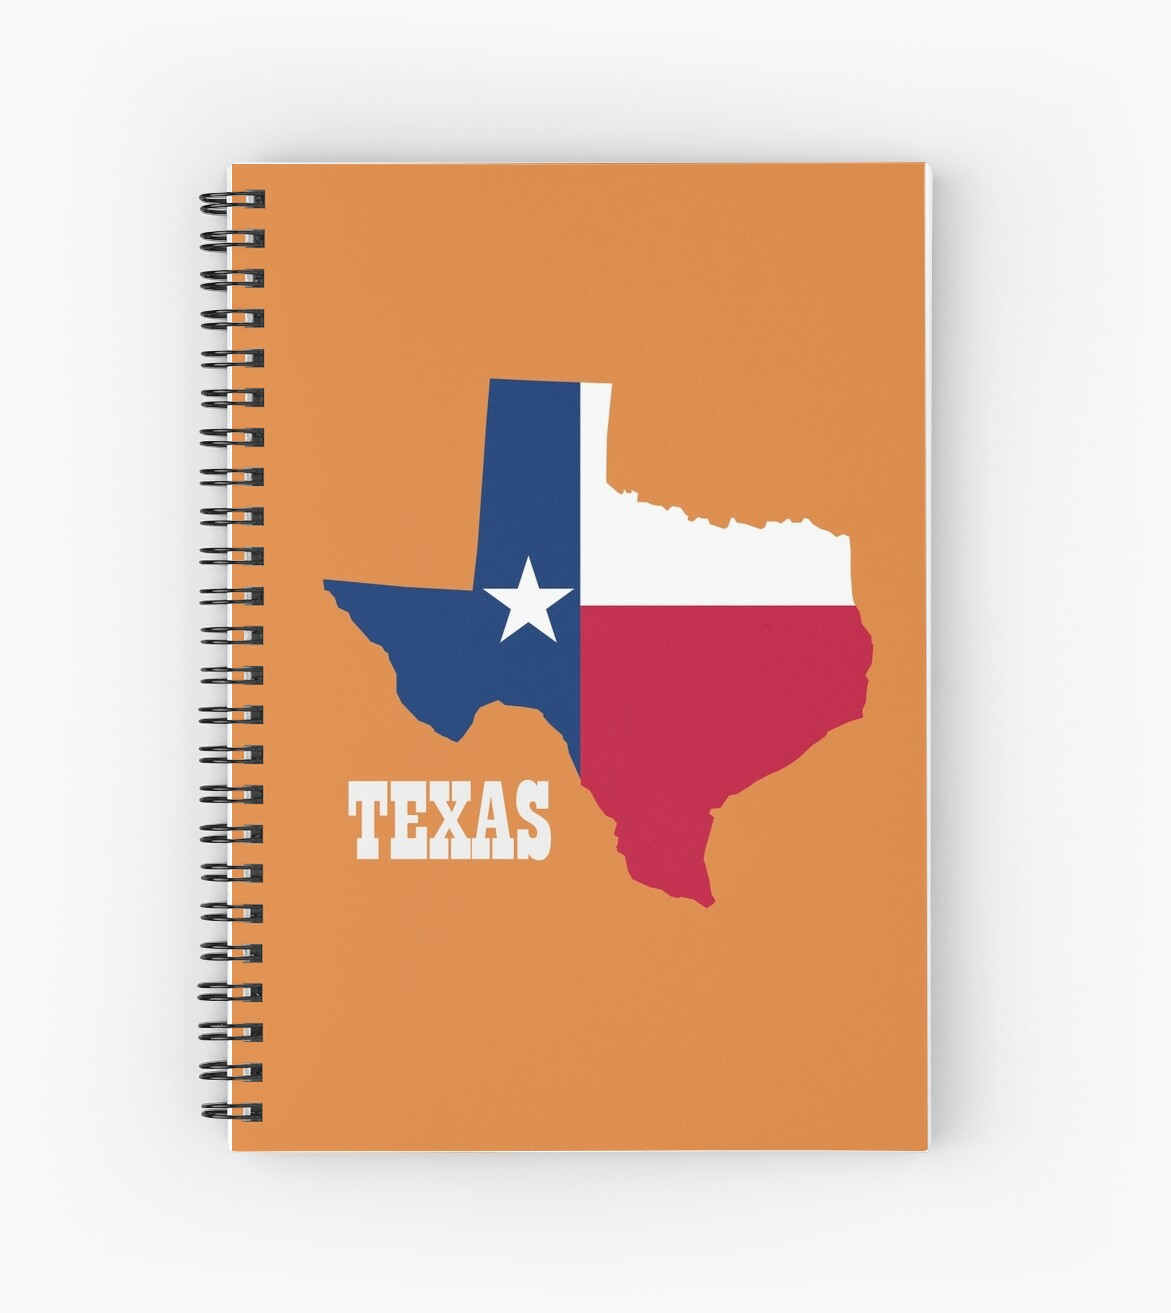 Texas pride - flag state cutout  by rachjacobs